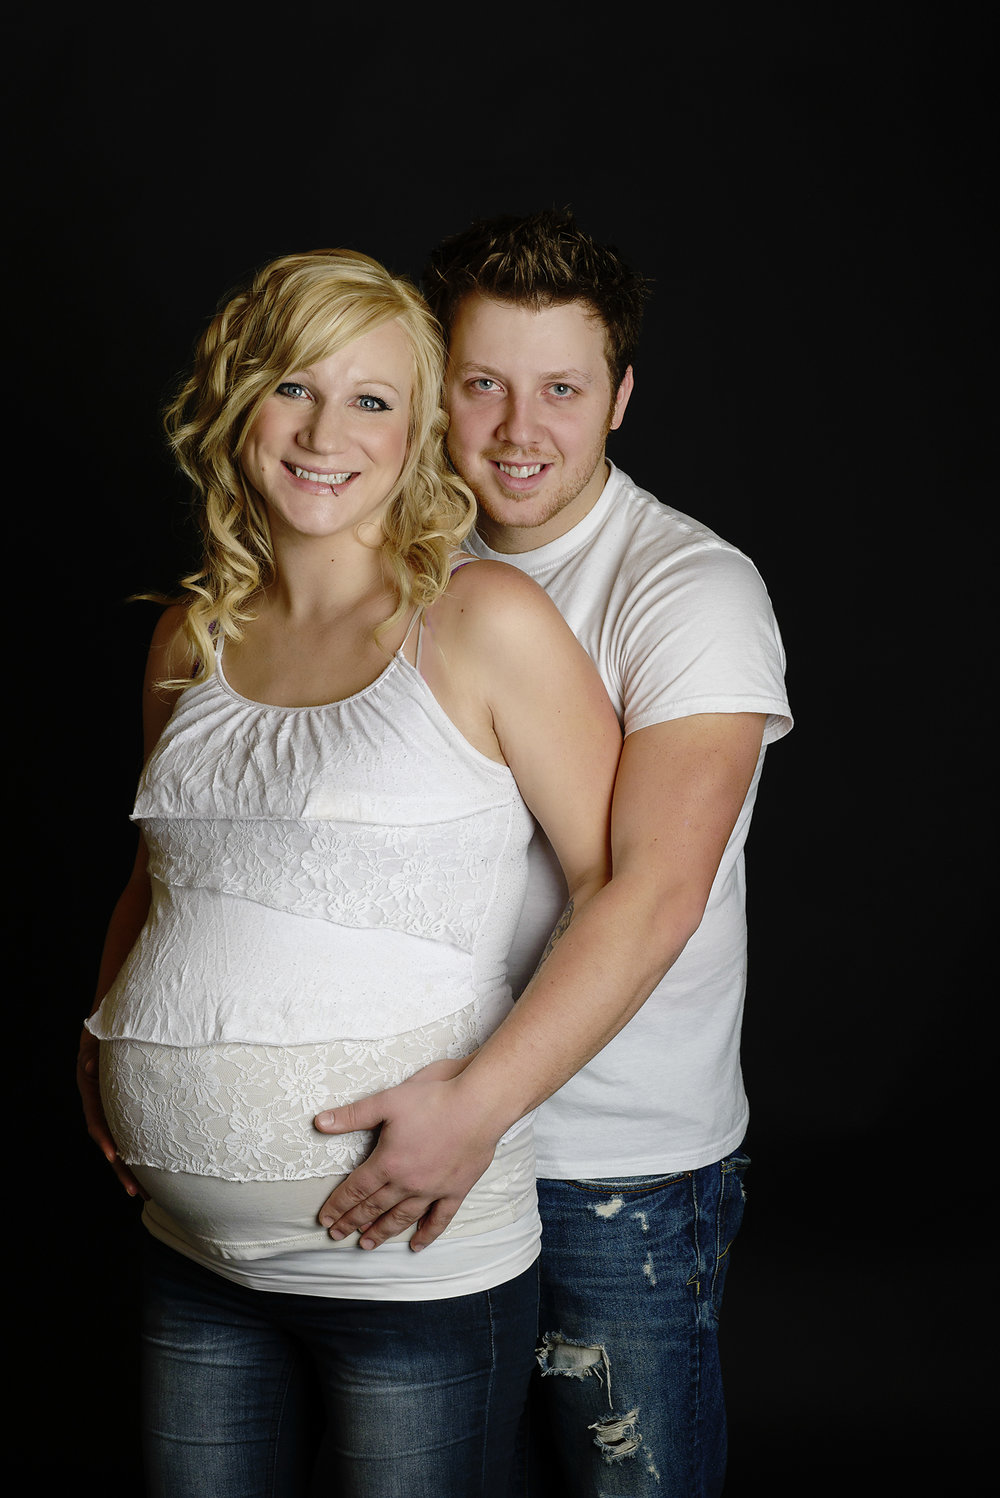 Saskatoon-Newborn-Family-Renditure-Photography-Photographer-Maternity-Pregnancy-Saskatchewan-542FBR.jpg